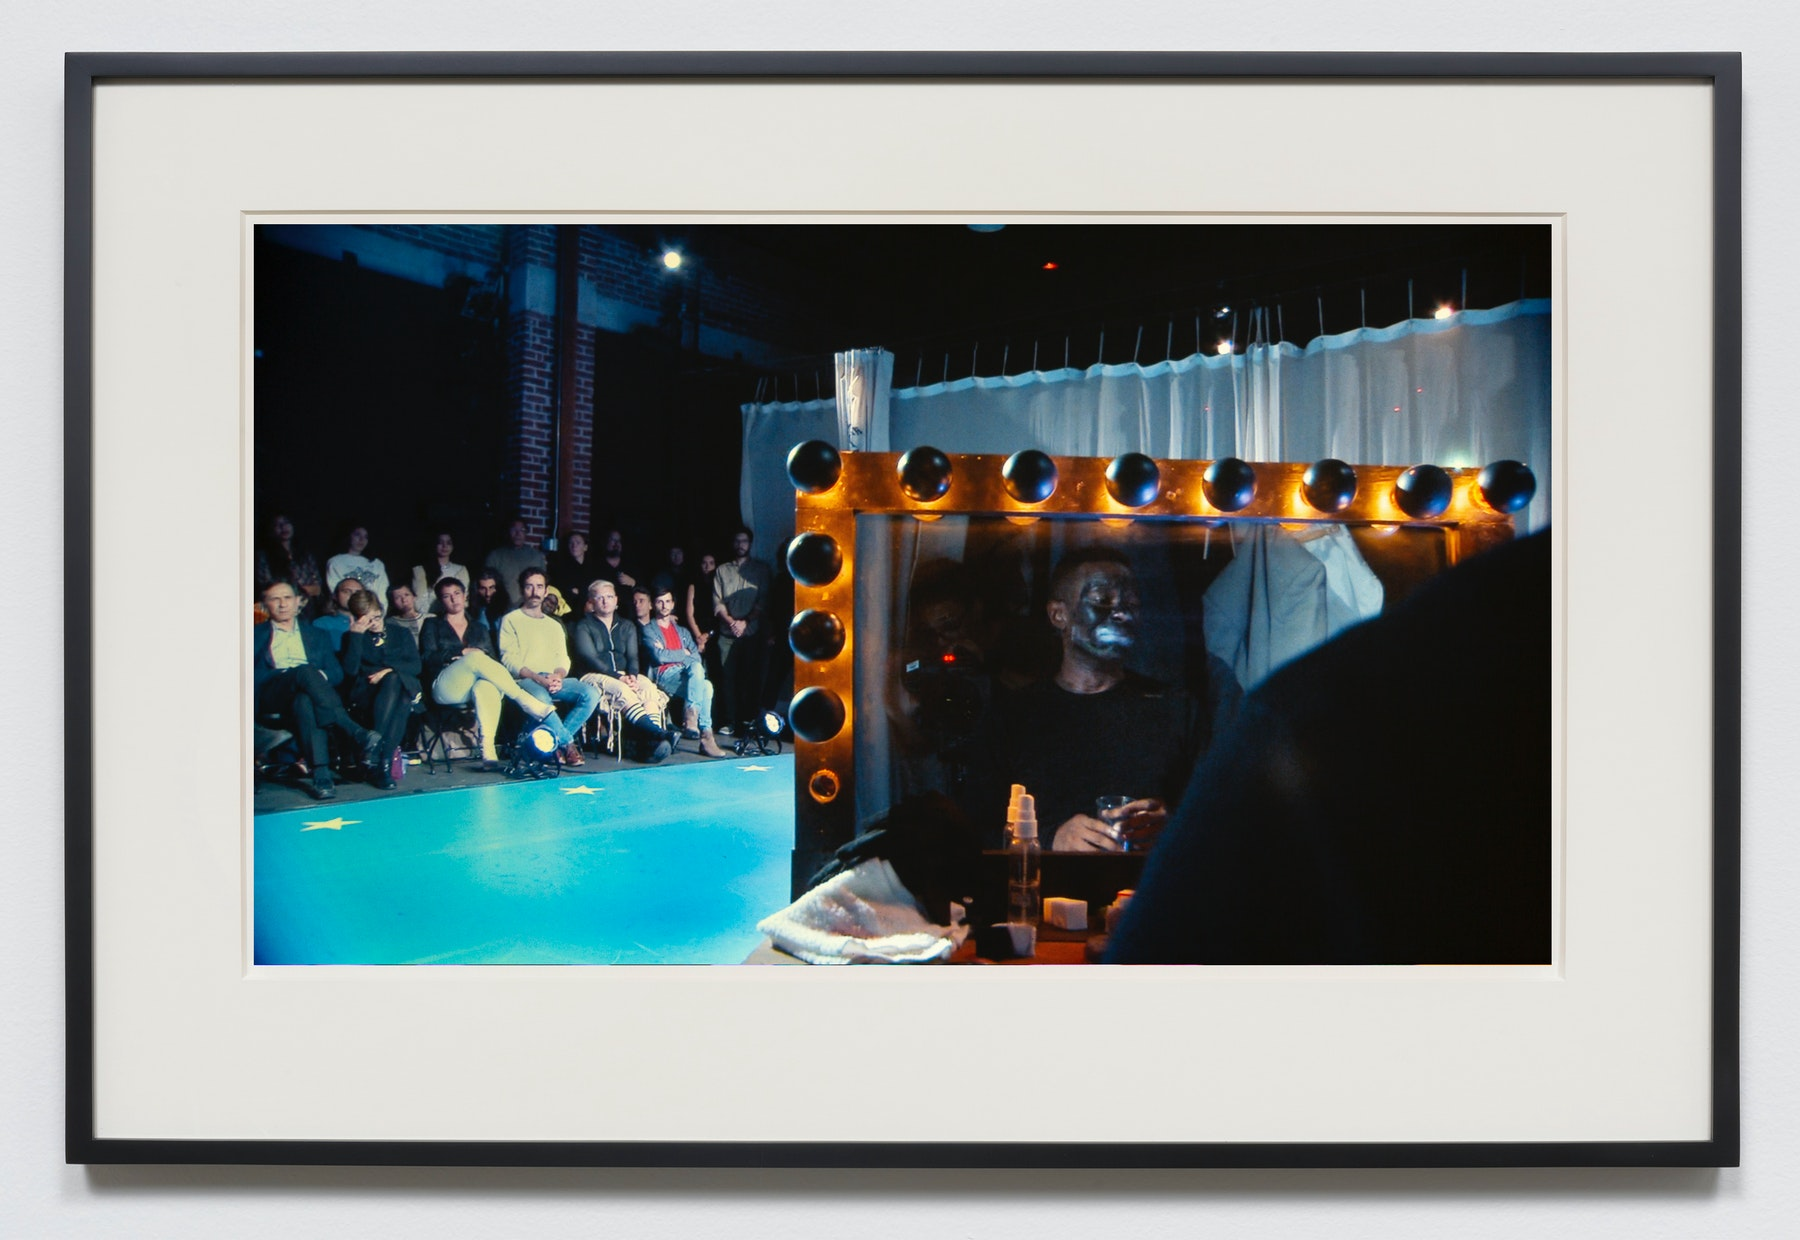 """Edgar Arceneaux """"Done Nothin' To Nobody,"""" 2015-2020 Photographic print 20 x 36"""" [HxW] (50.8 x 91.44 cm) unframed, 23.5 x 39.5 x 2"""" [HxWxD] (59.69 x 100.33 x 5.08 cm) framed Edition 1 of 5, 2 AP Inventory #ARC628.01 Courtesy of the artist and Vielmetter Los Angeles"""